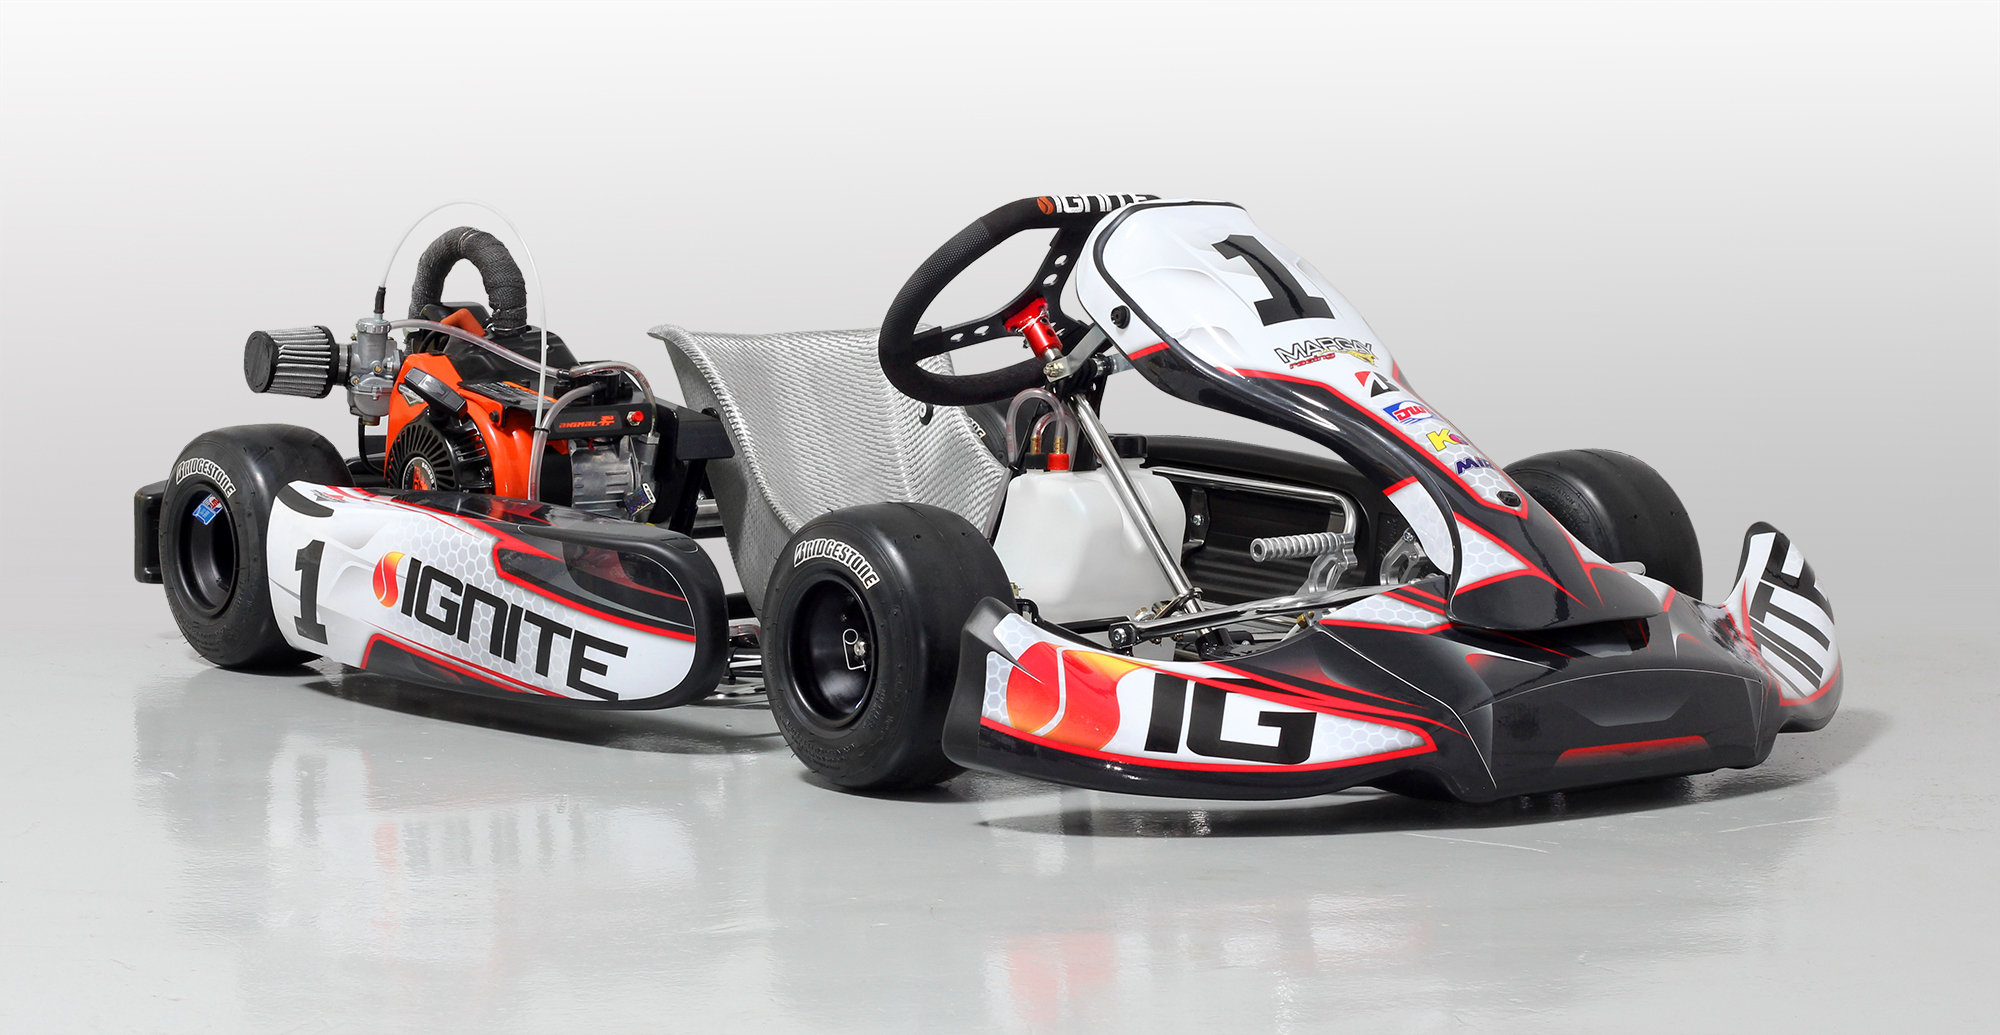 2016 Ignite K2 Chassis